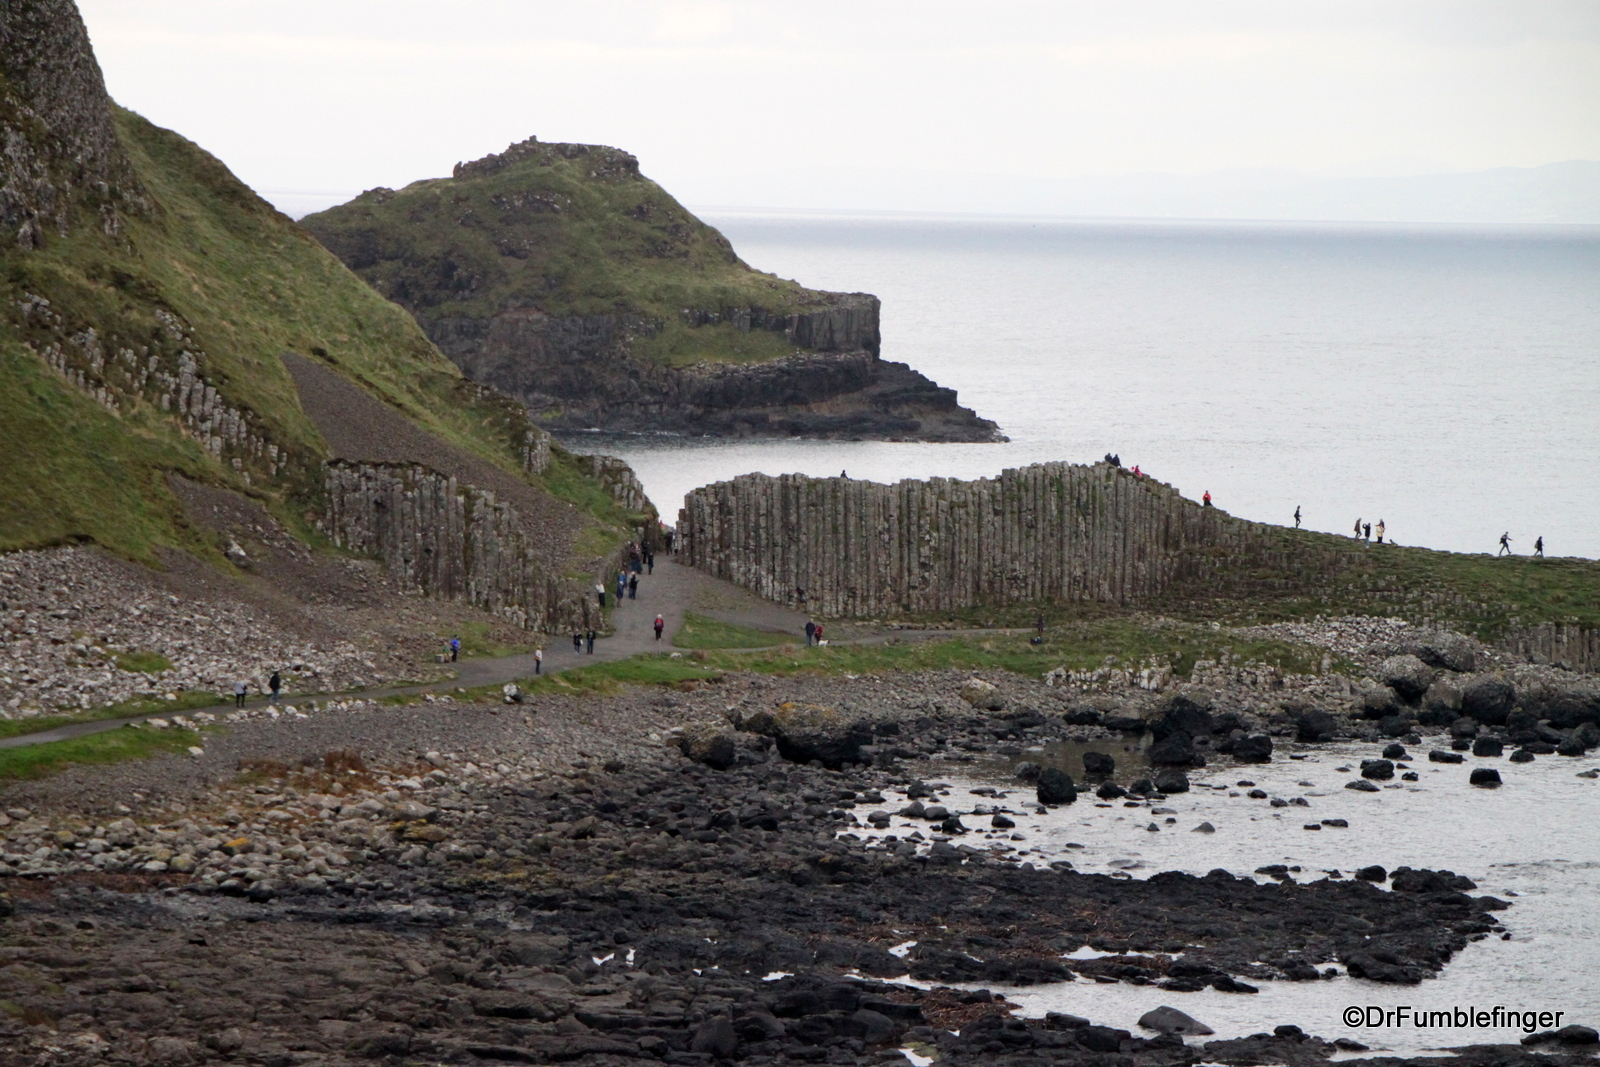 Distant views of the Giant's Causeway